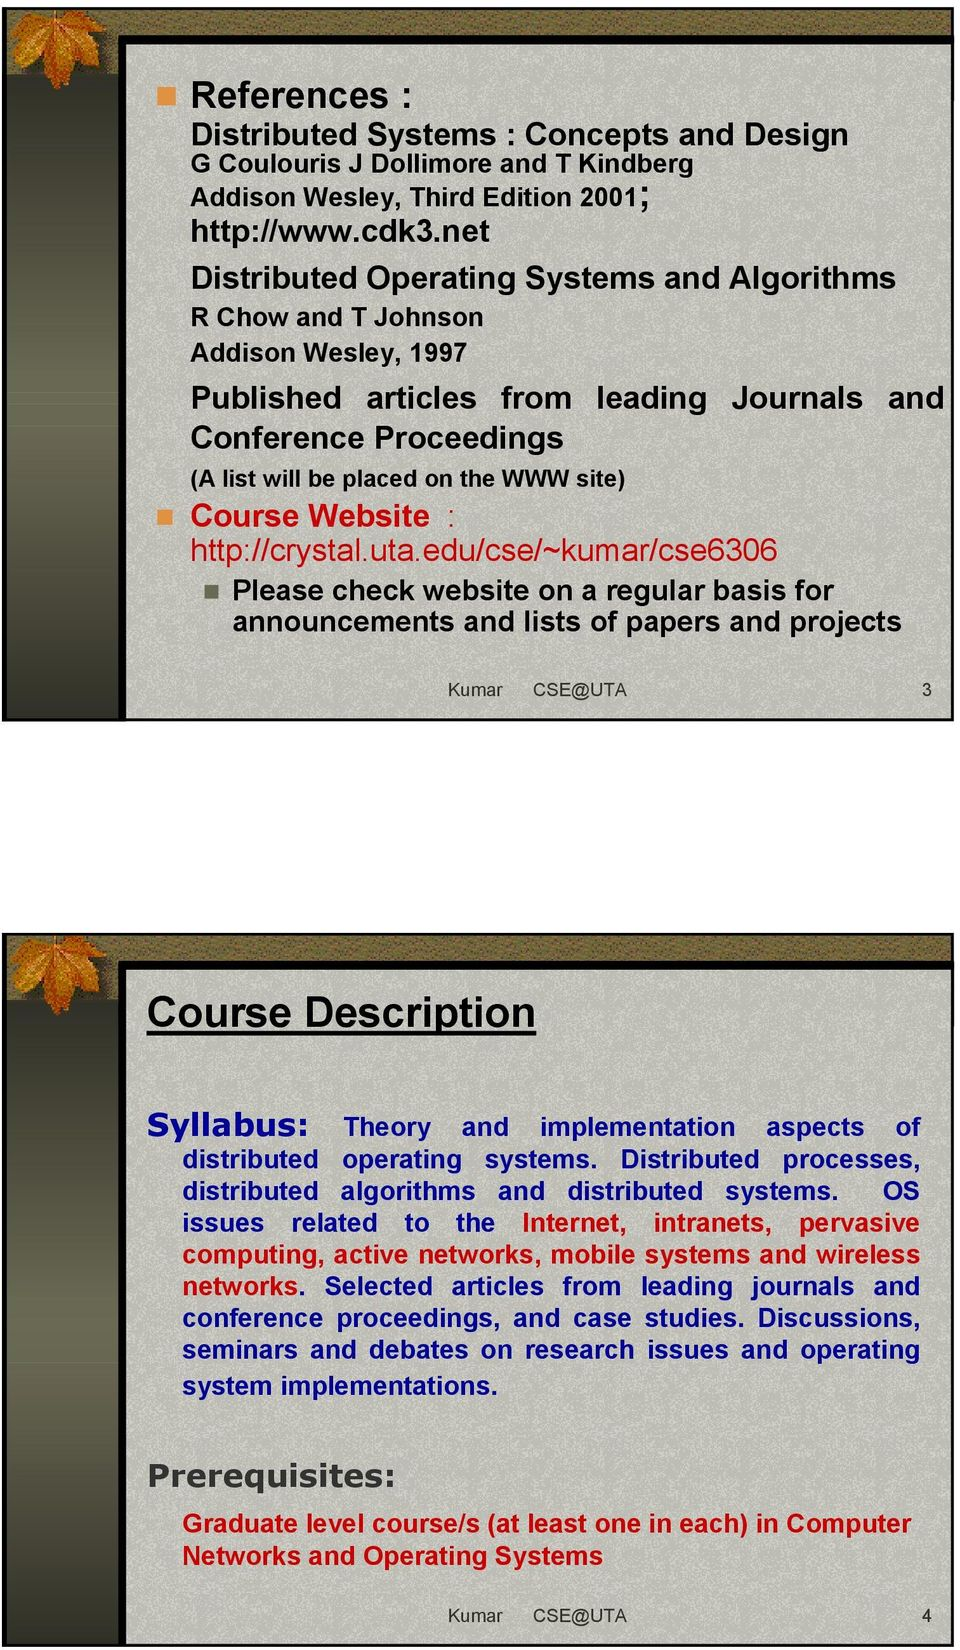 Course Website : http://crystal.uta.